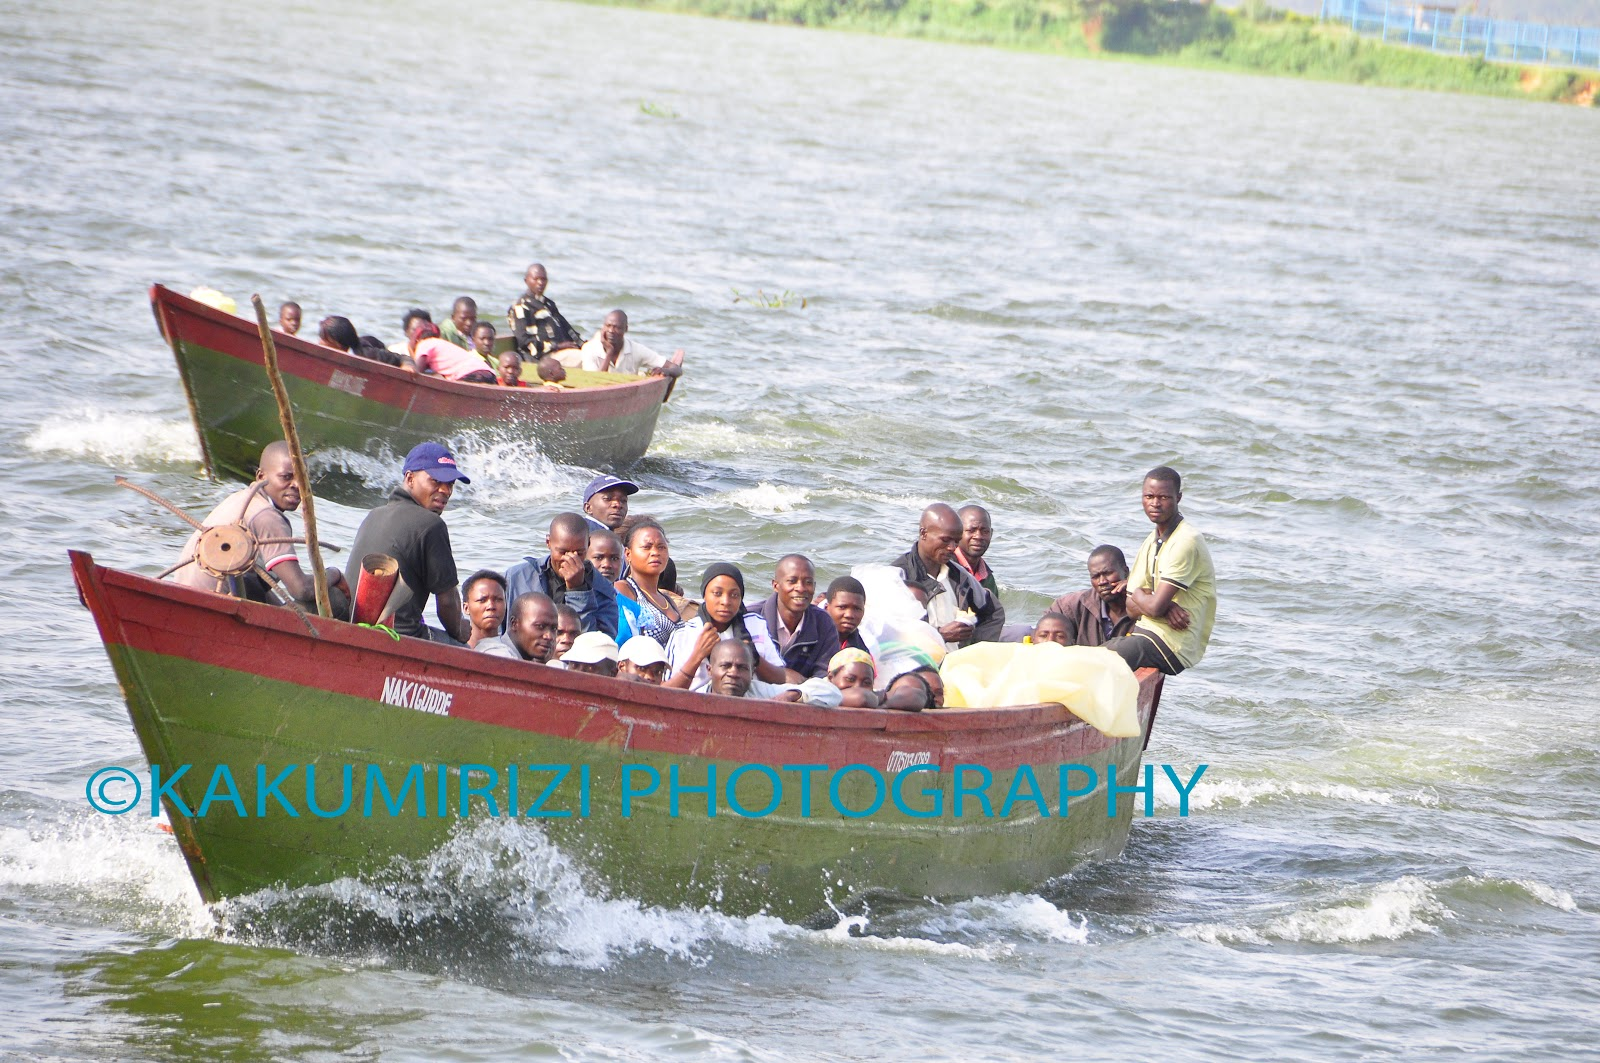 Kakumiriziphotography: WATER TRANSPORT IN UGANDA